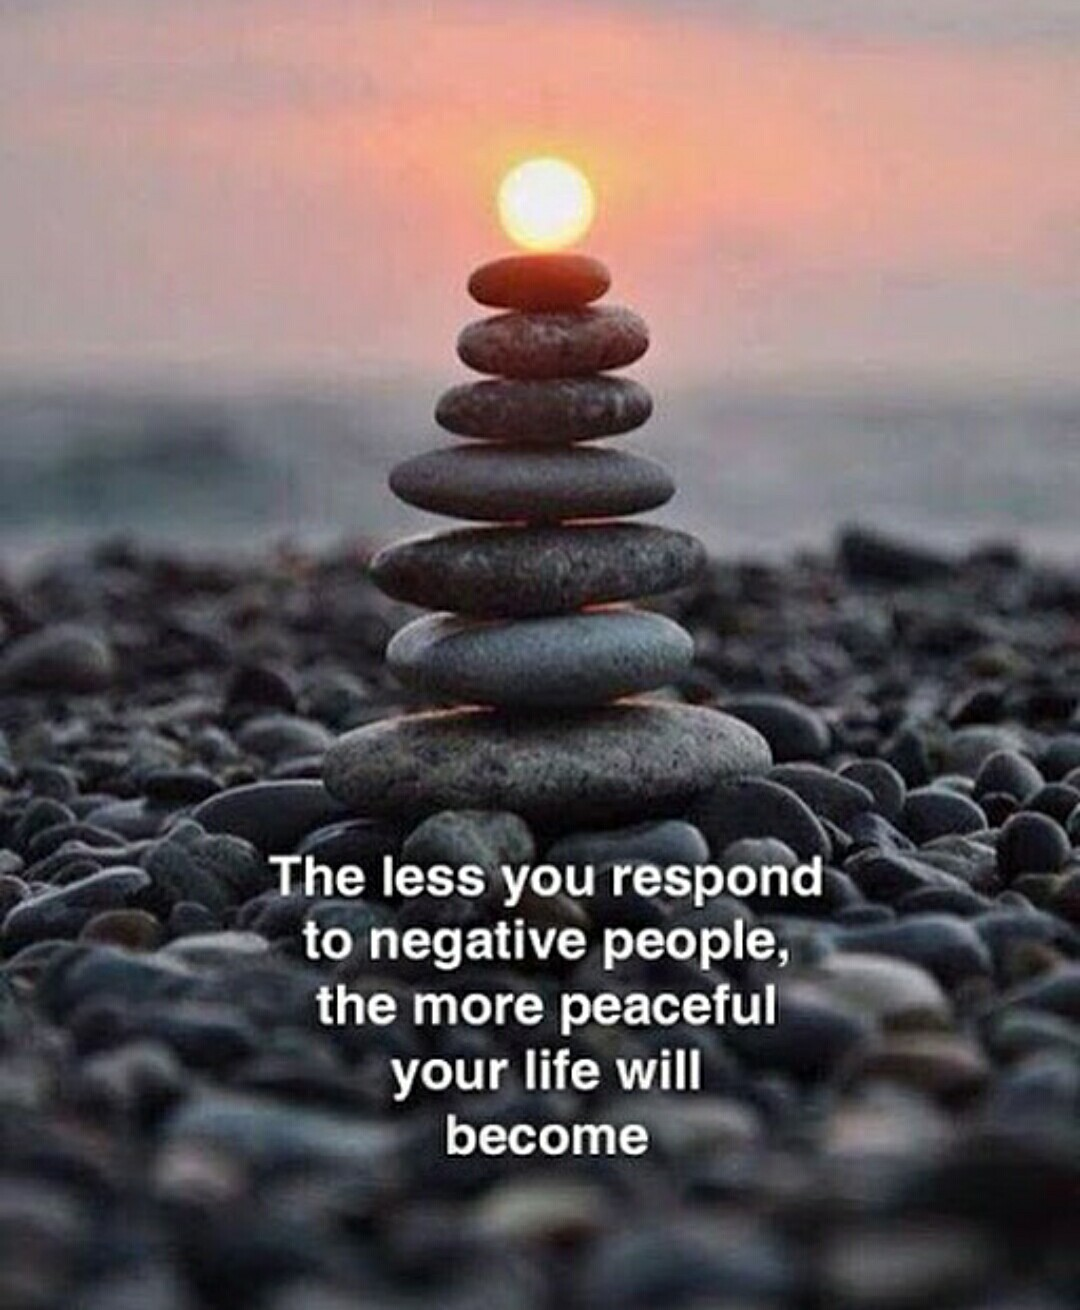 The less you respond to negative people, the more peaceful your life will become. -